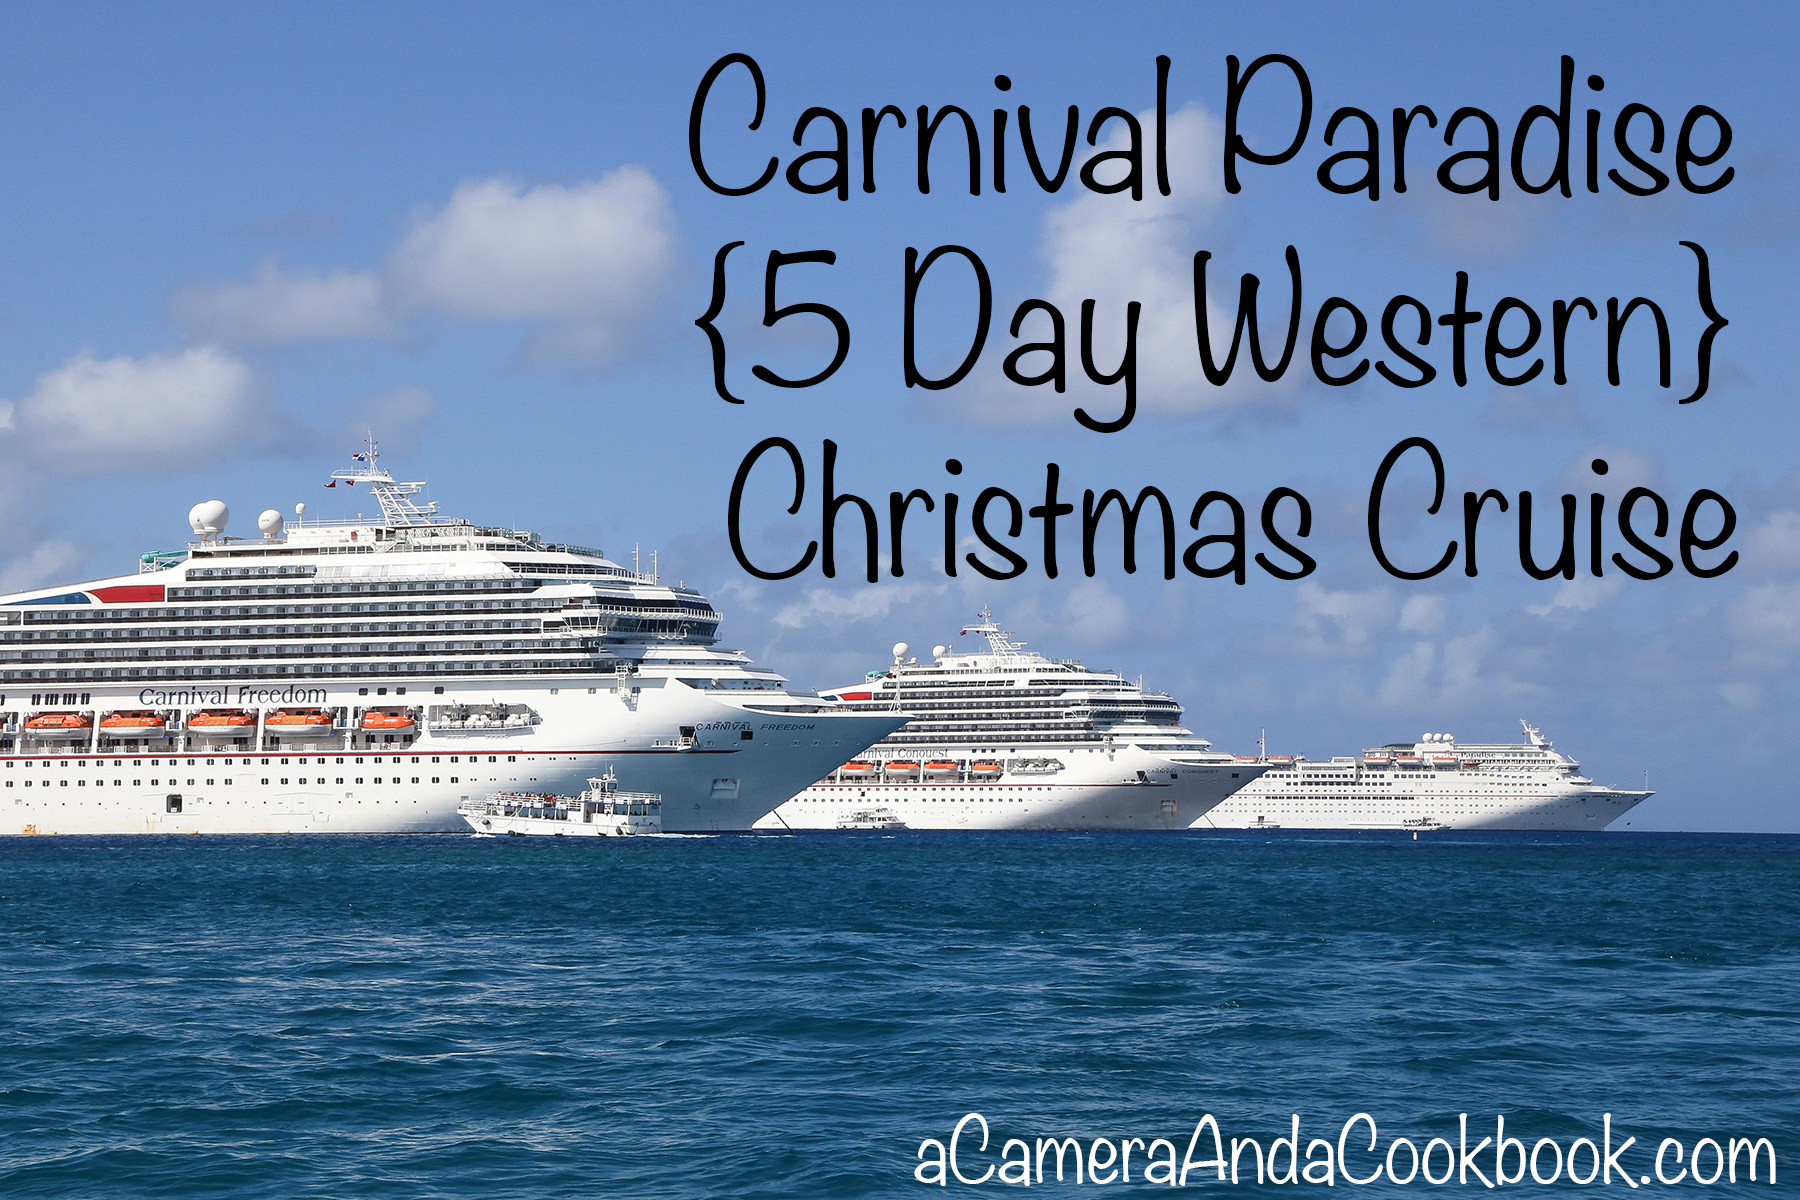 Carnival Paradise {5 Day Western} Christmas Cruise - read all about our adventures on the Carnival Paradise out of Tampa to Grand Cayman & Cozumel.